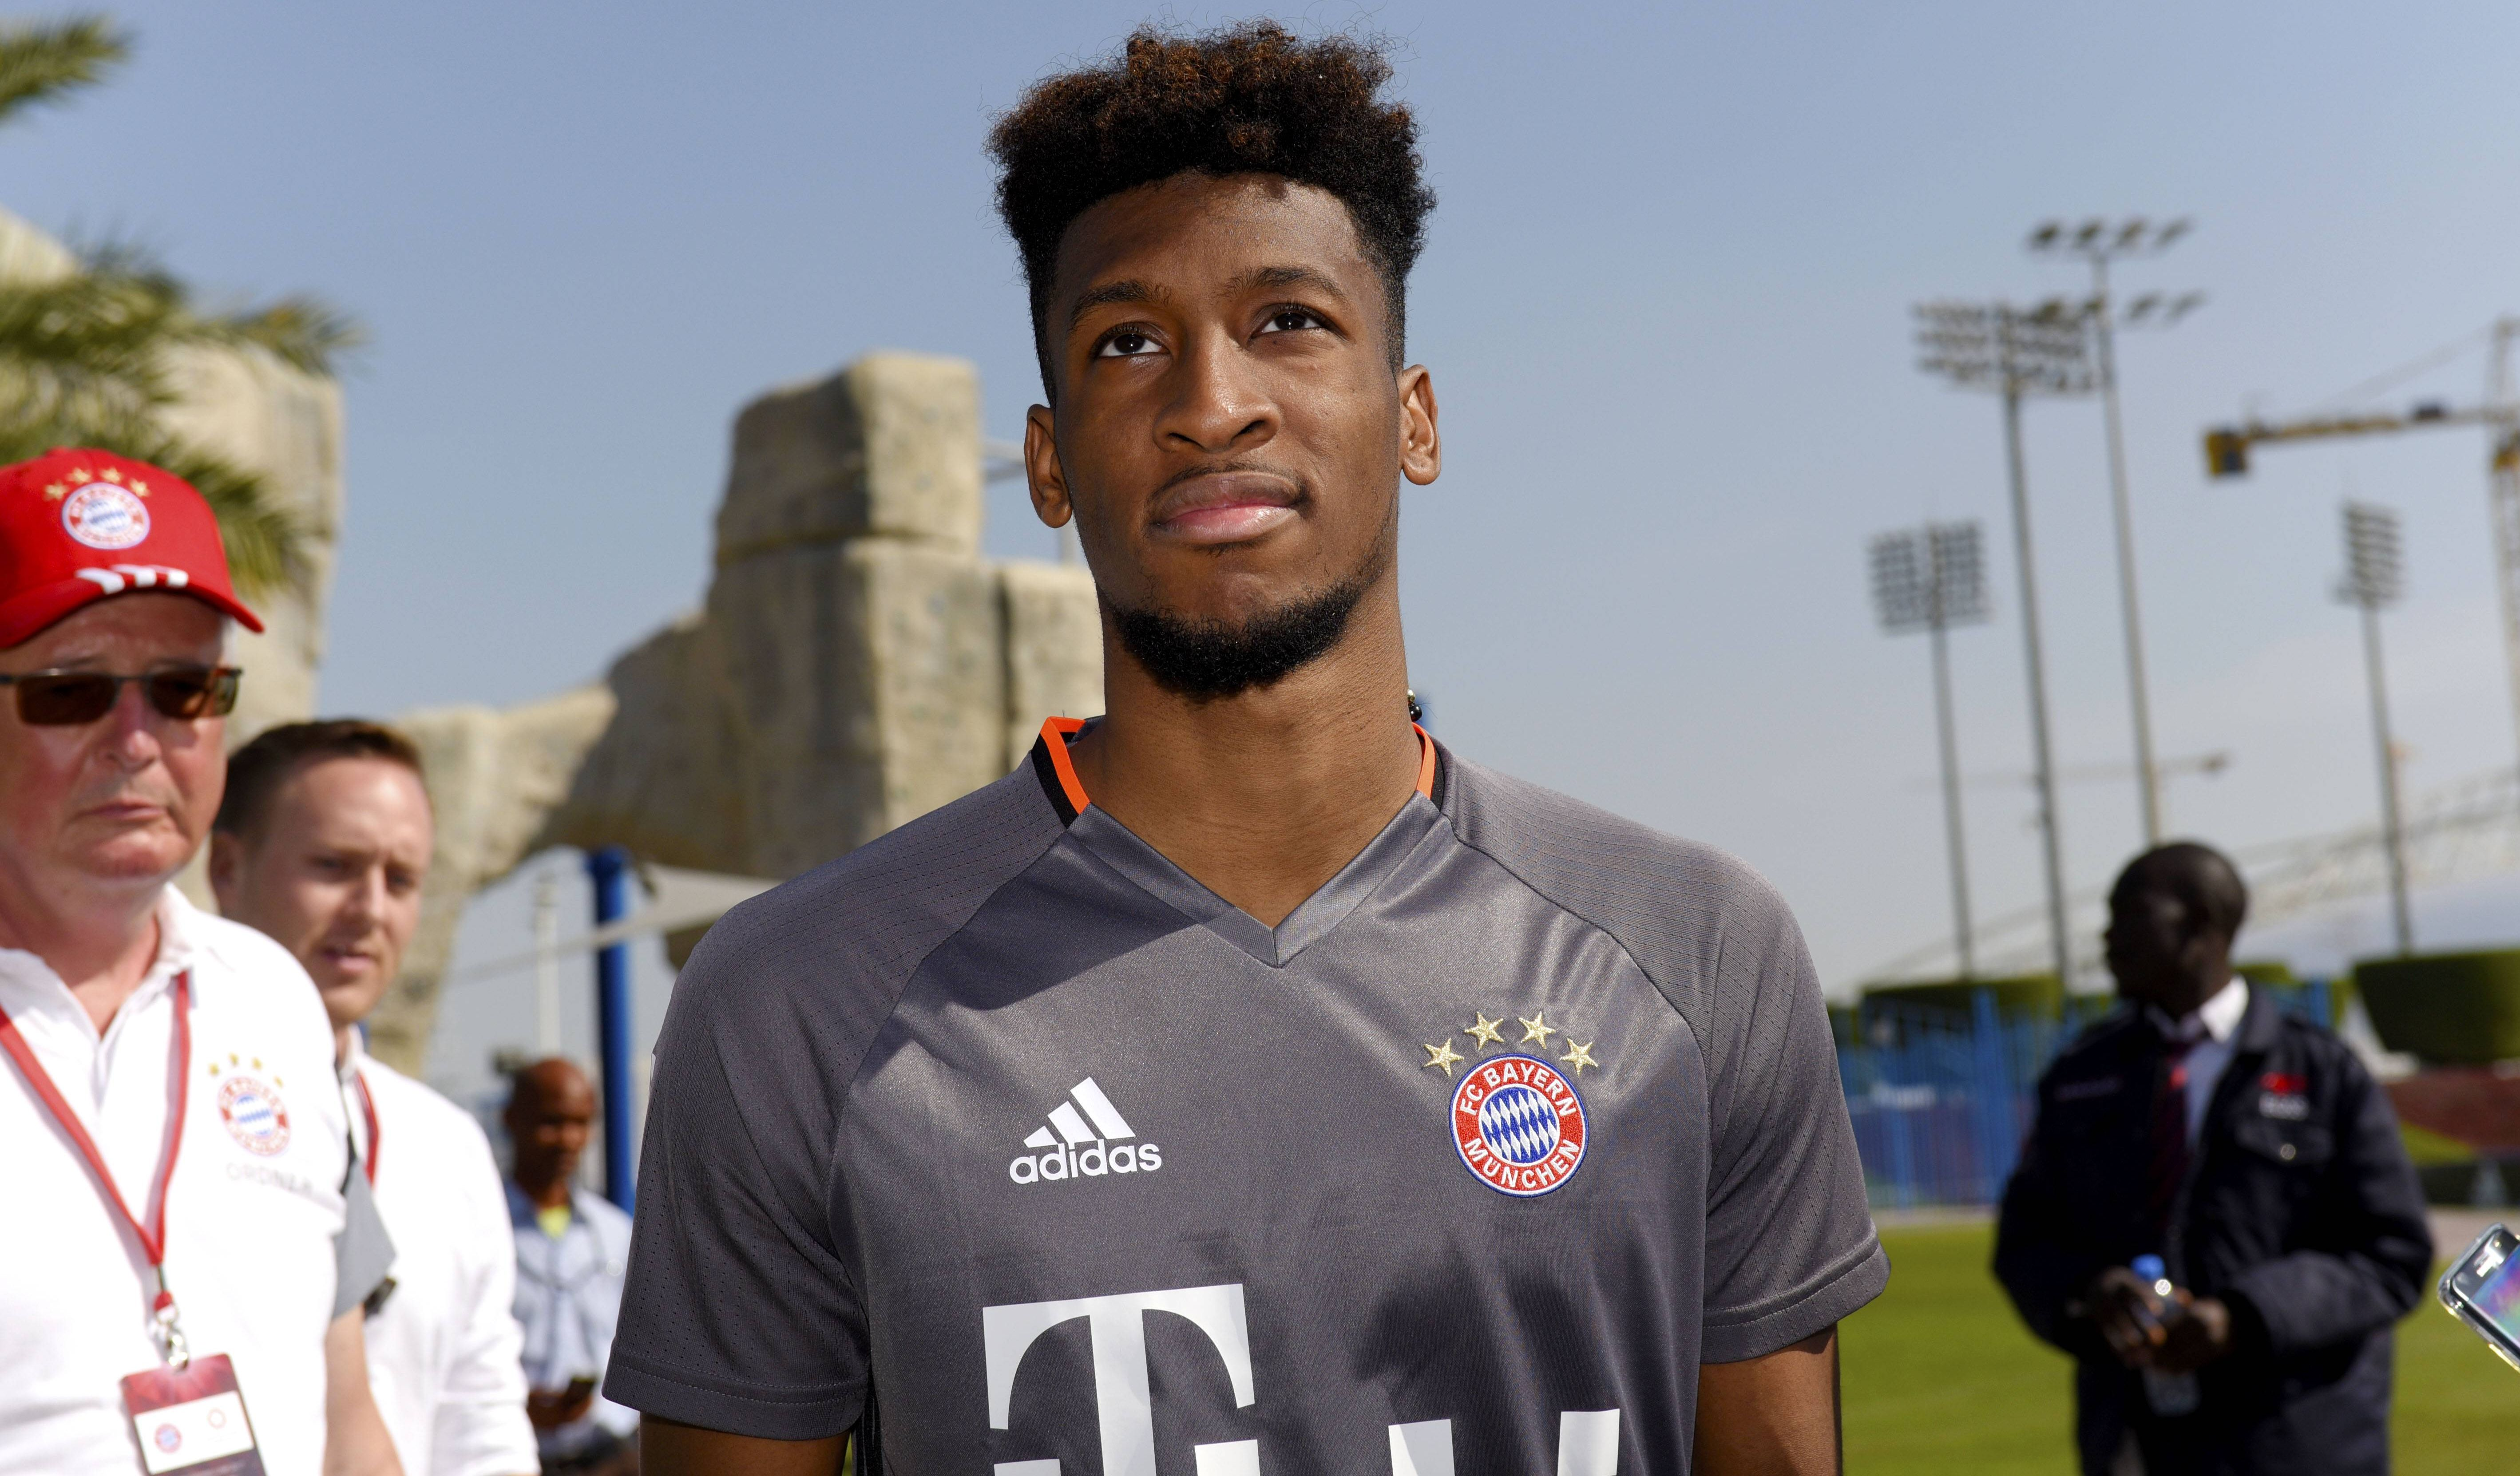 Football - Transferts - Kingsley Coman signe (définitivement) au Bayern Munich